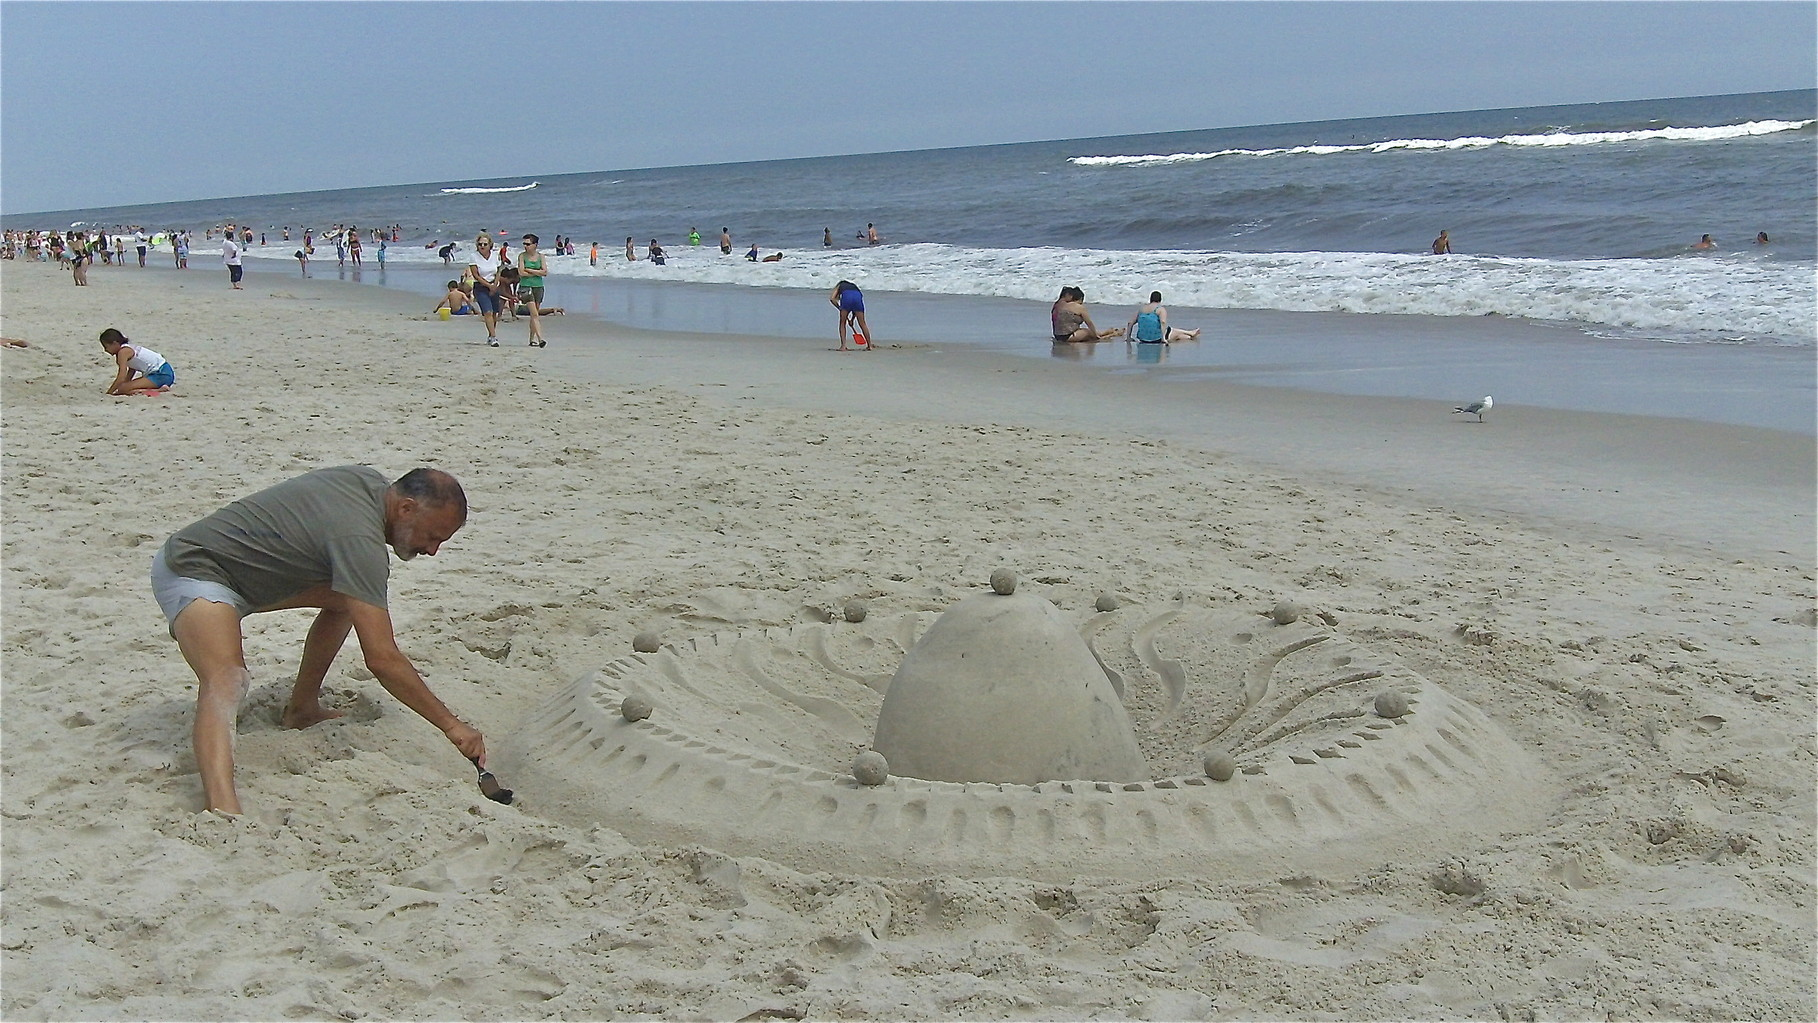 Strange non-castle structure in the sand at Jones Beach...